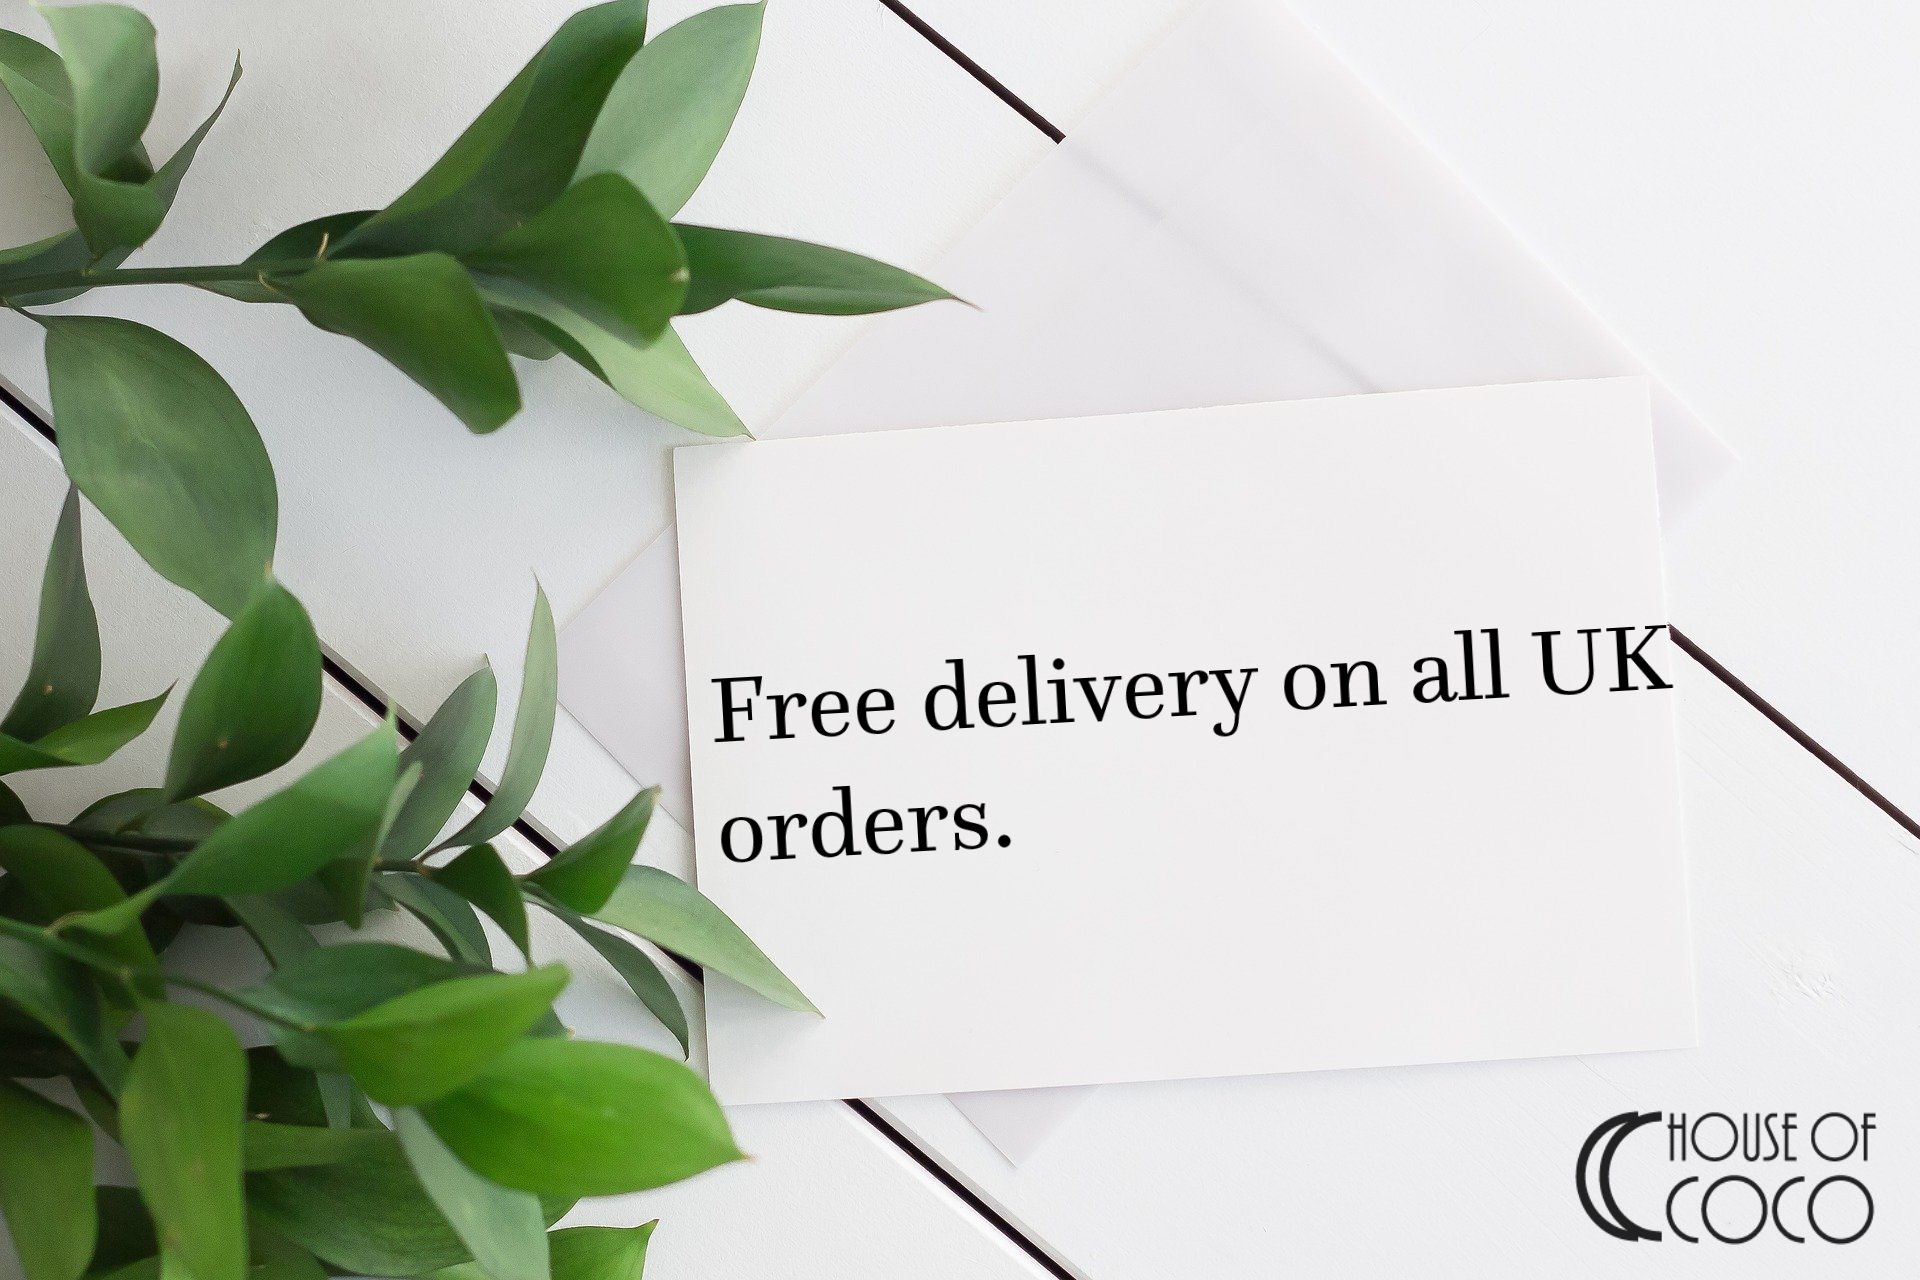 White background with green leaves and free delivery notice.